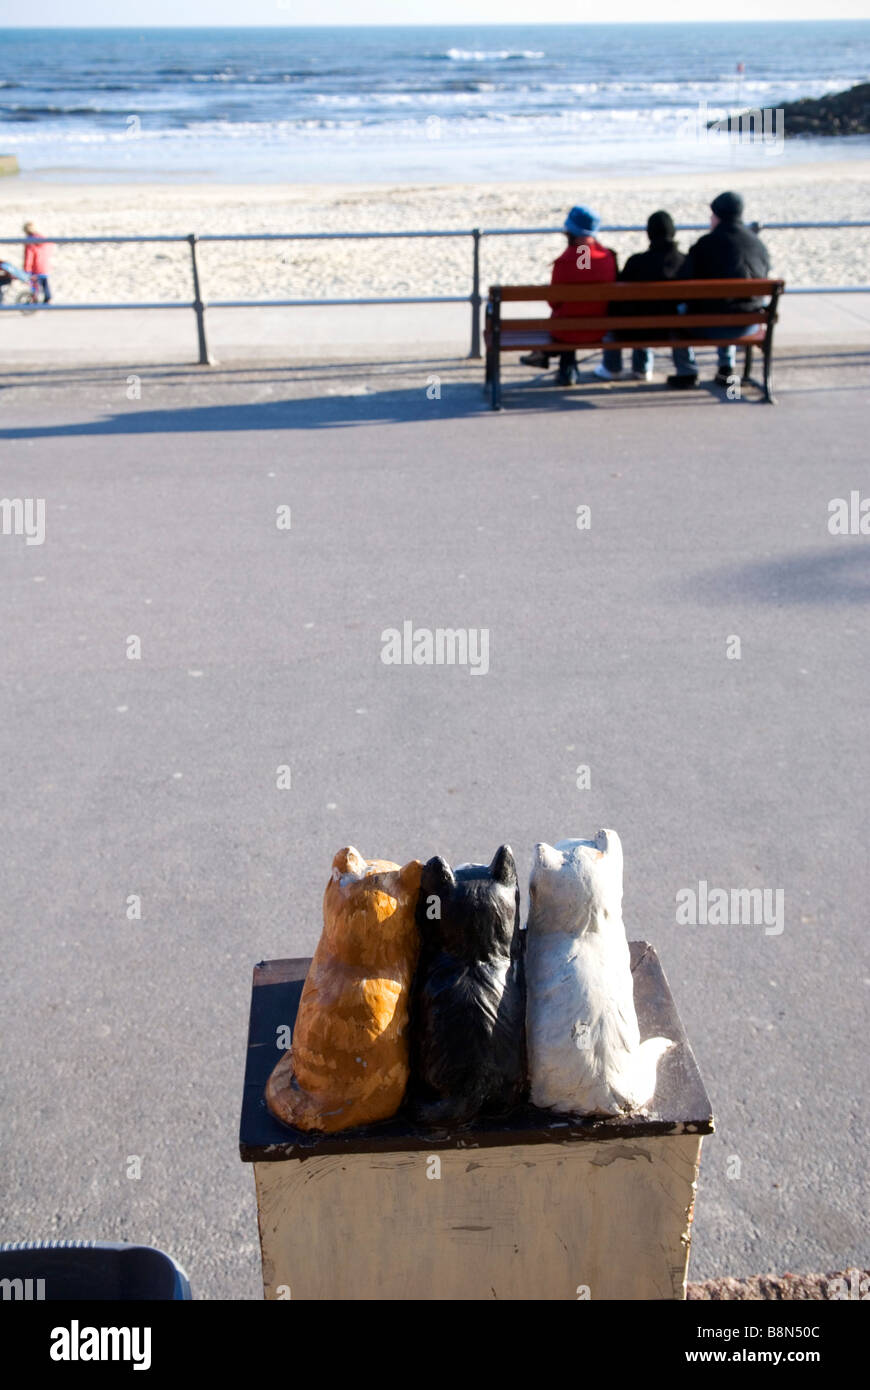 close up of rear view of three ceramic cats on charity box with three people on bench on promenade in background Stock Photo